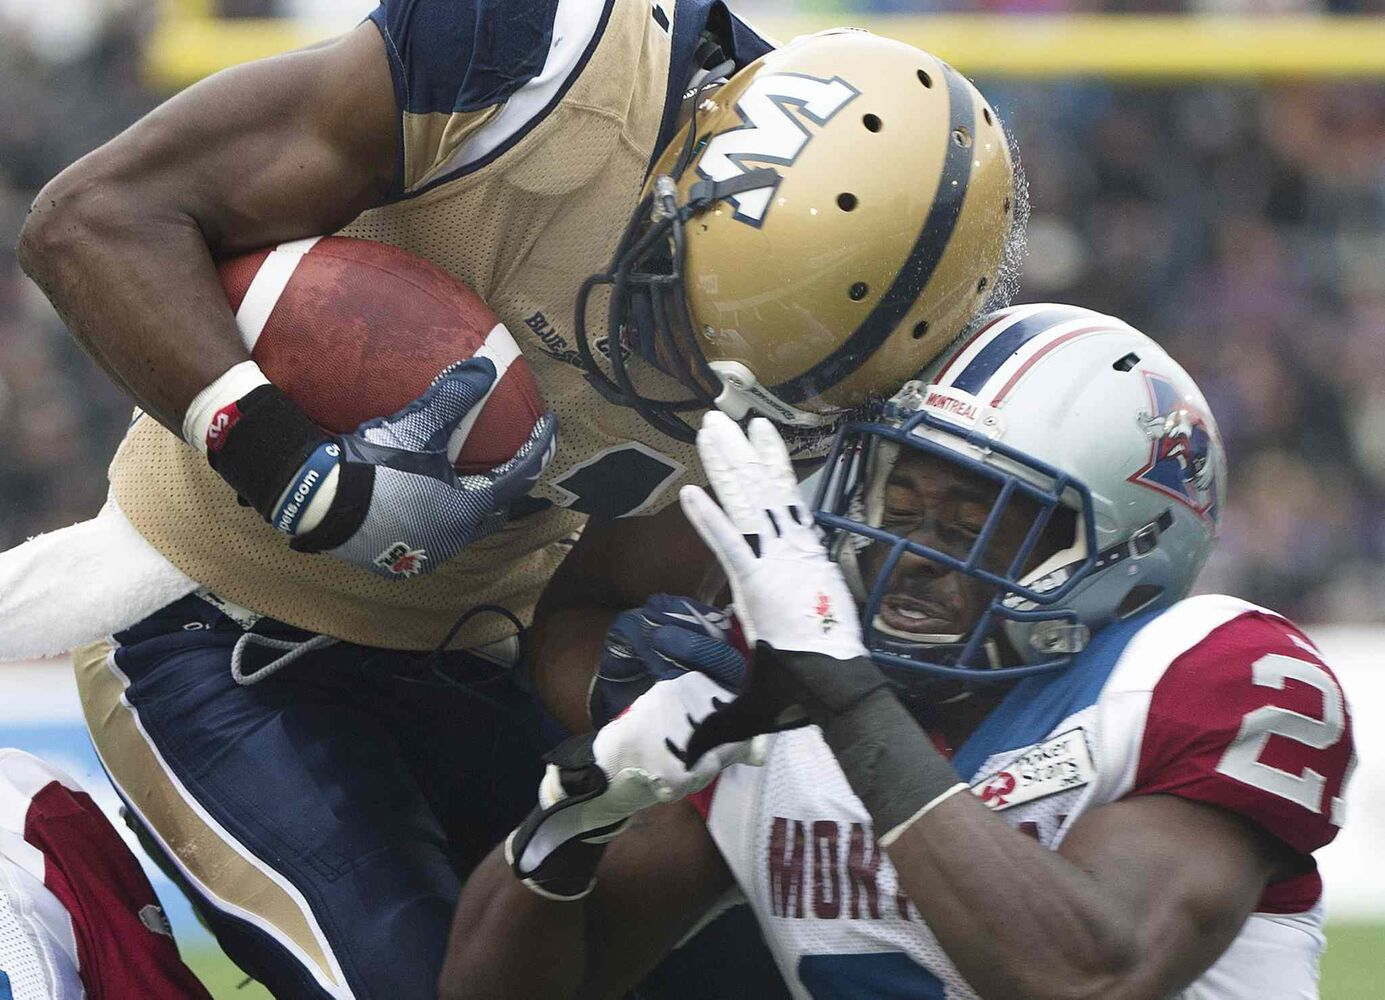 Winnipeg Blue Bombers' Cory Watson, left, is tackled by Montreal Alouettes' Mike Edem during first half CFL football action in Montreal, Monday. Winnipeg won, 34-27. (Graham Hughes / The Canadian Press)